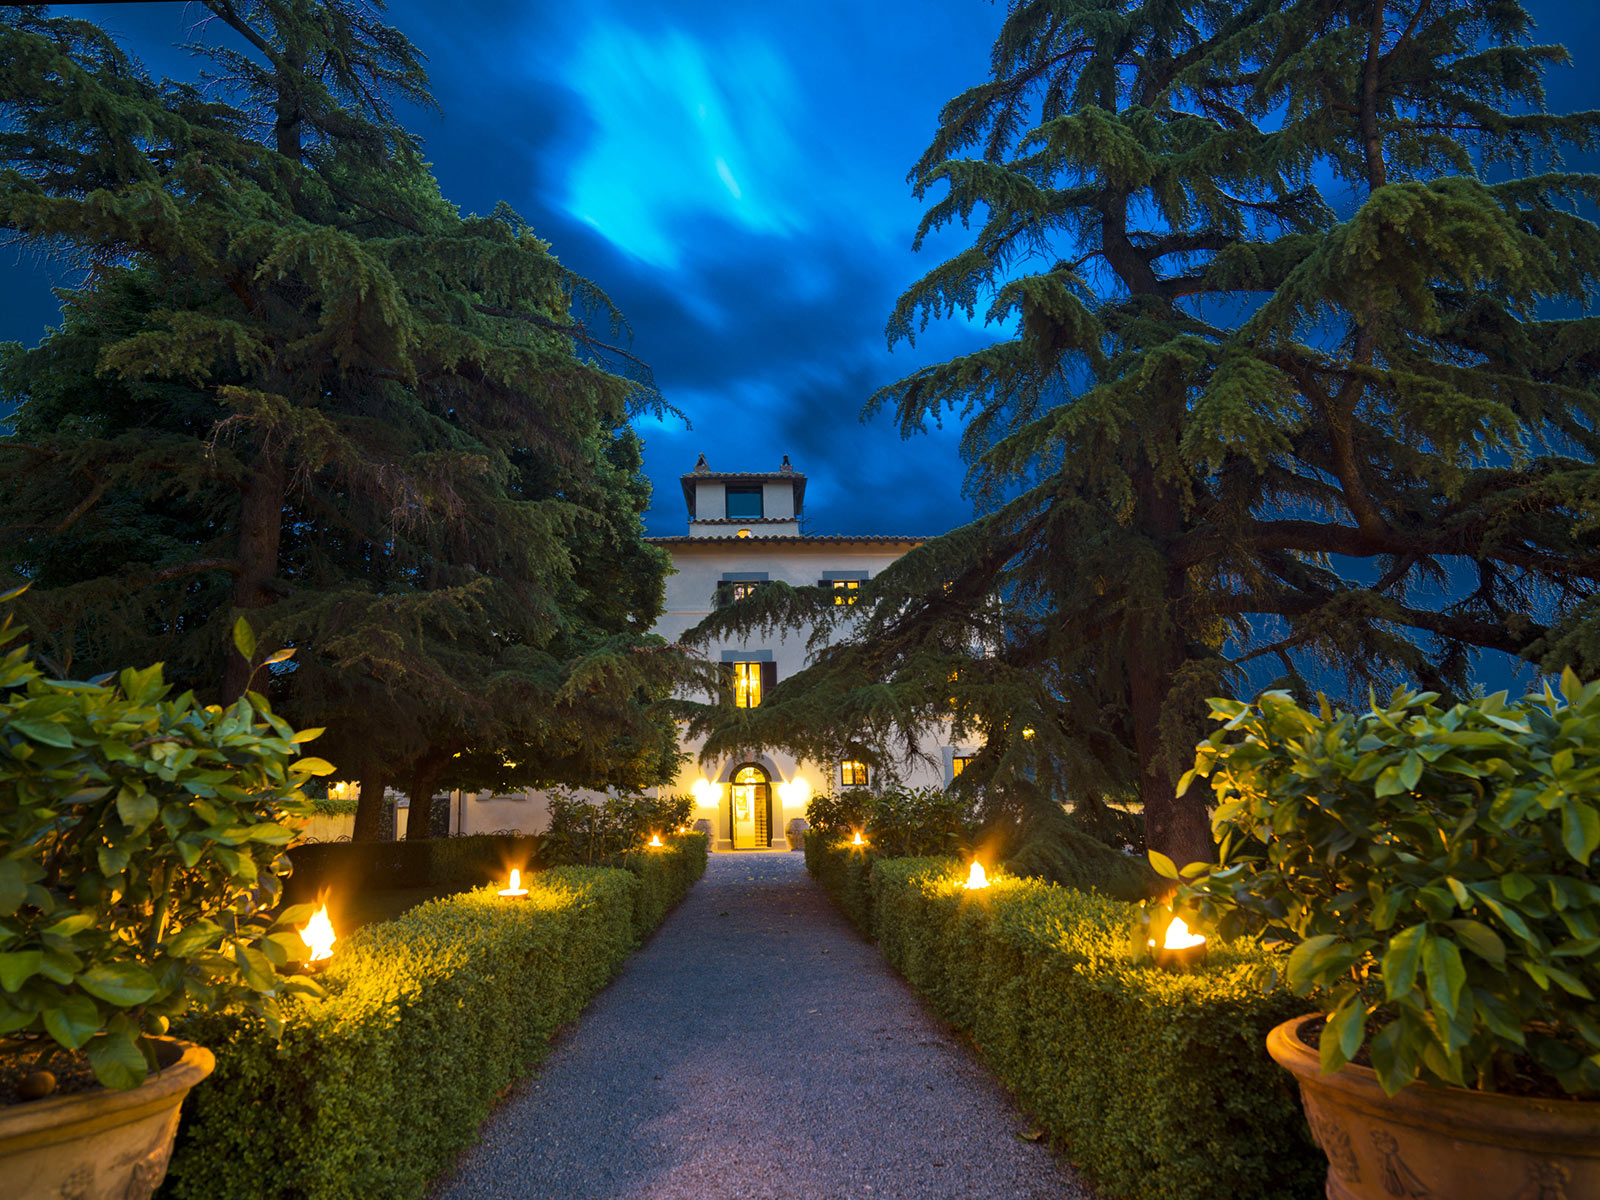 Villa-Monte-Solare-Hotel-and-SPA-in-Umbria-Italy